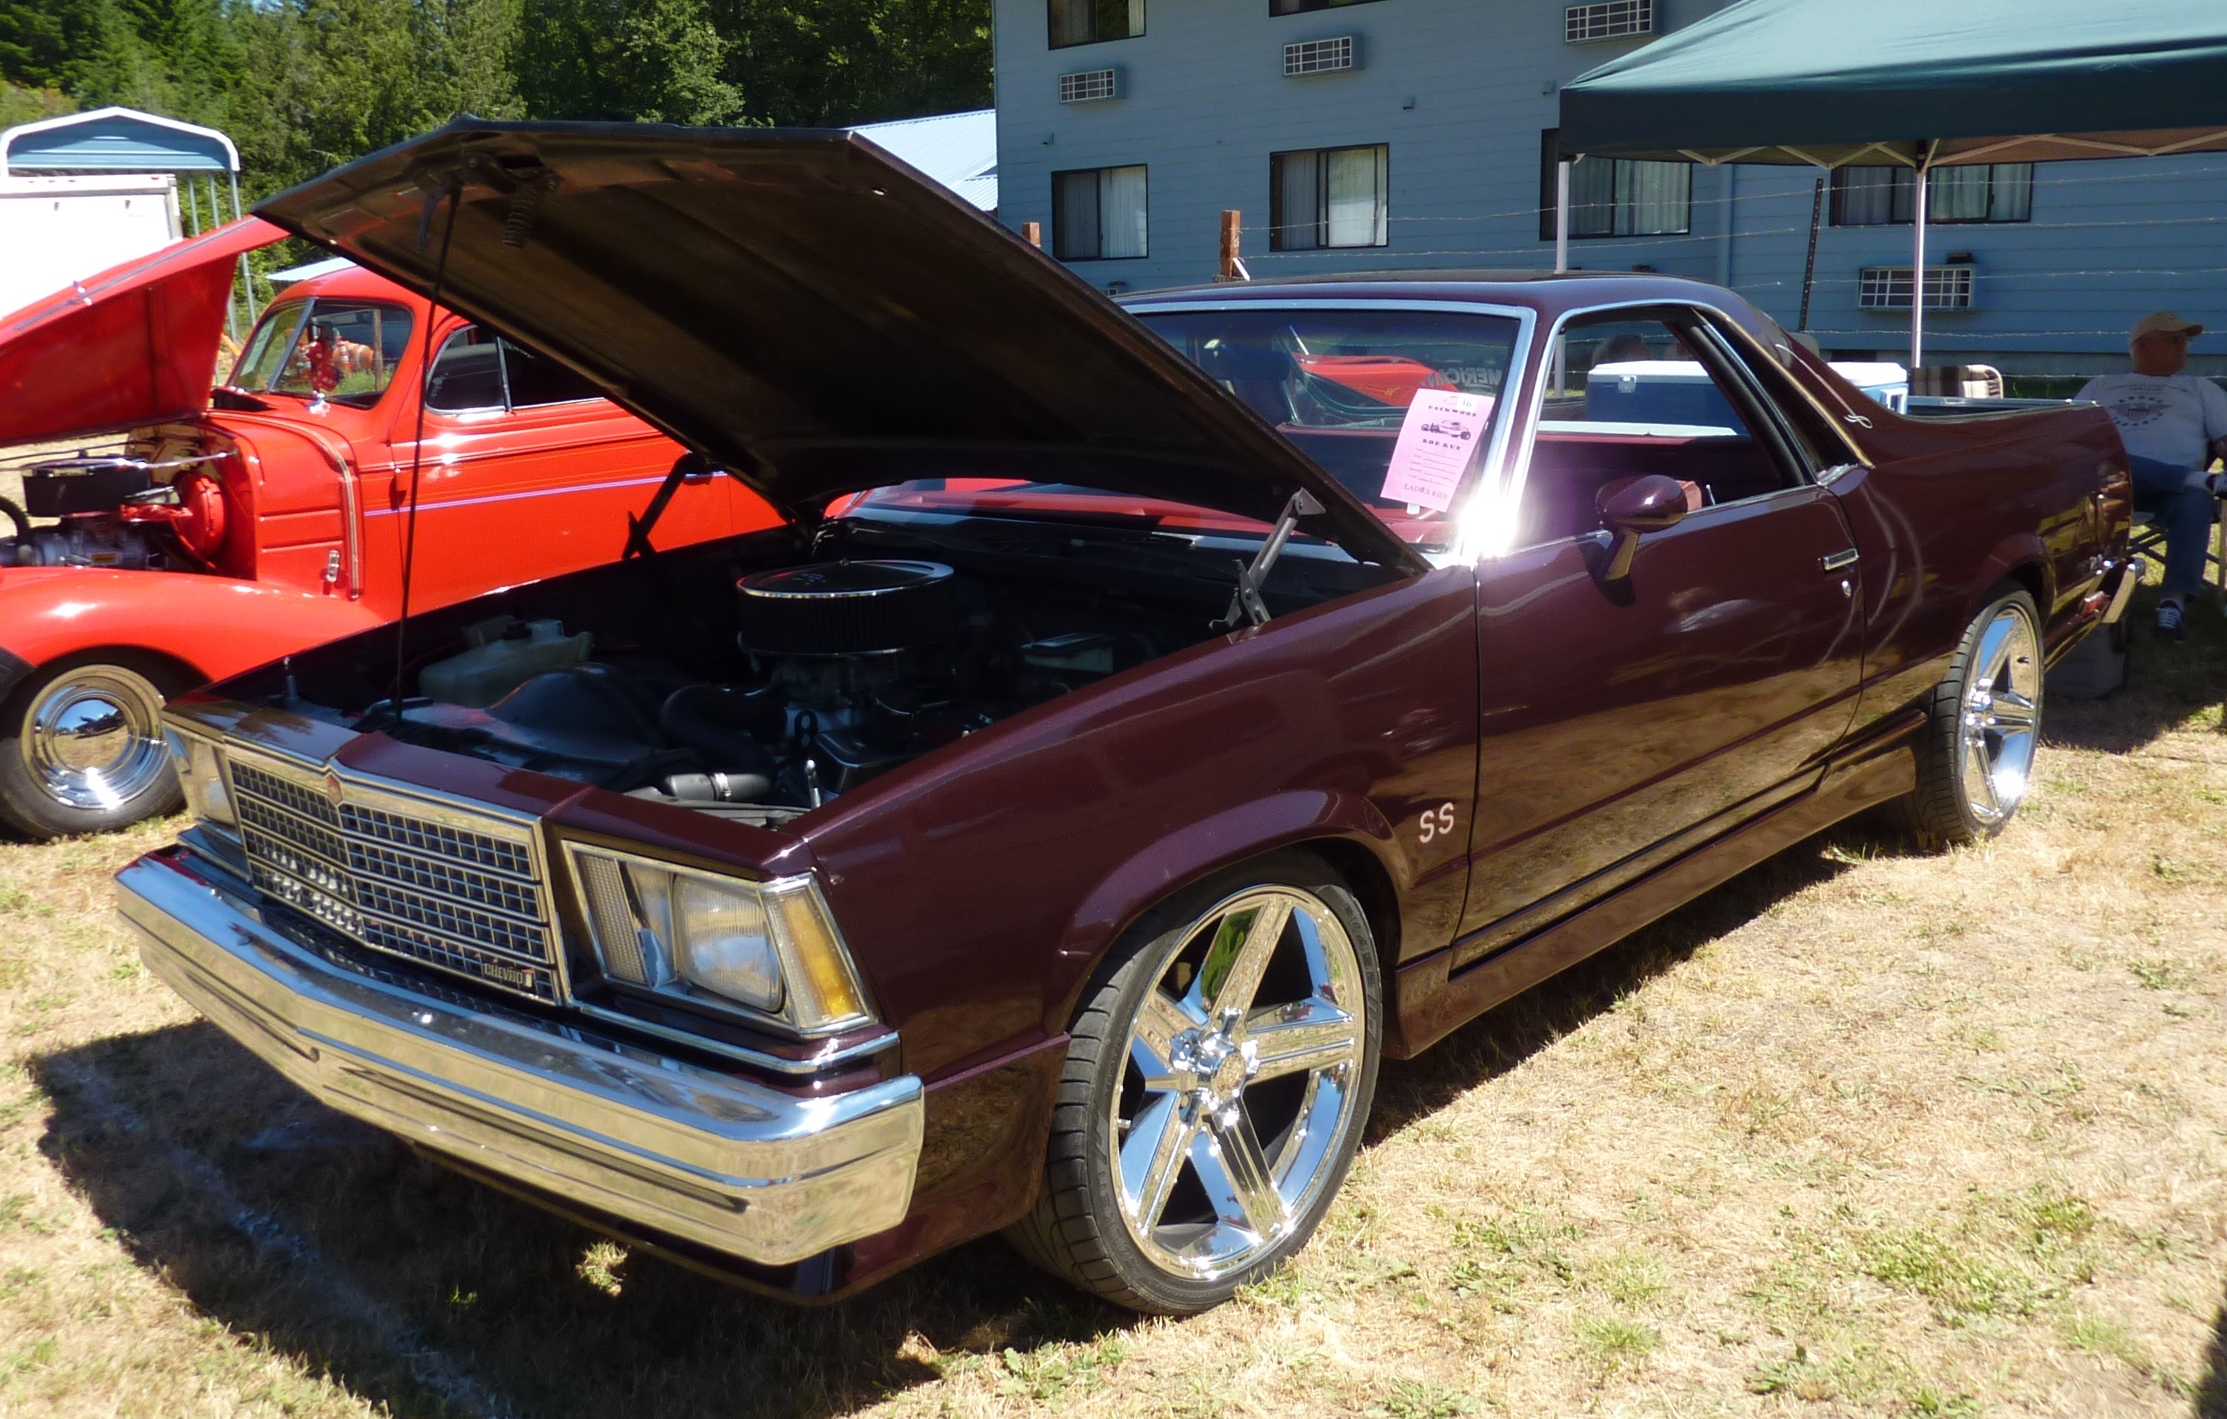 1974 el camino 1974 chevrolet el camino ss 454 for sale el camino gmc sprints ect pinterest chevrolet el camino el camino and chevrolet